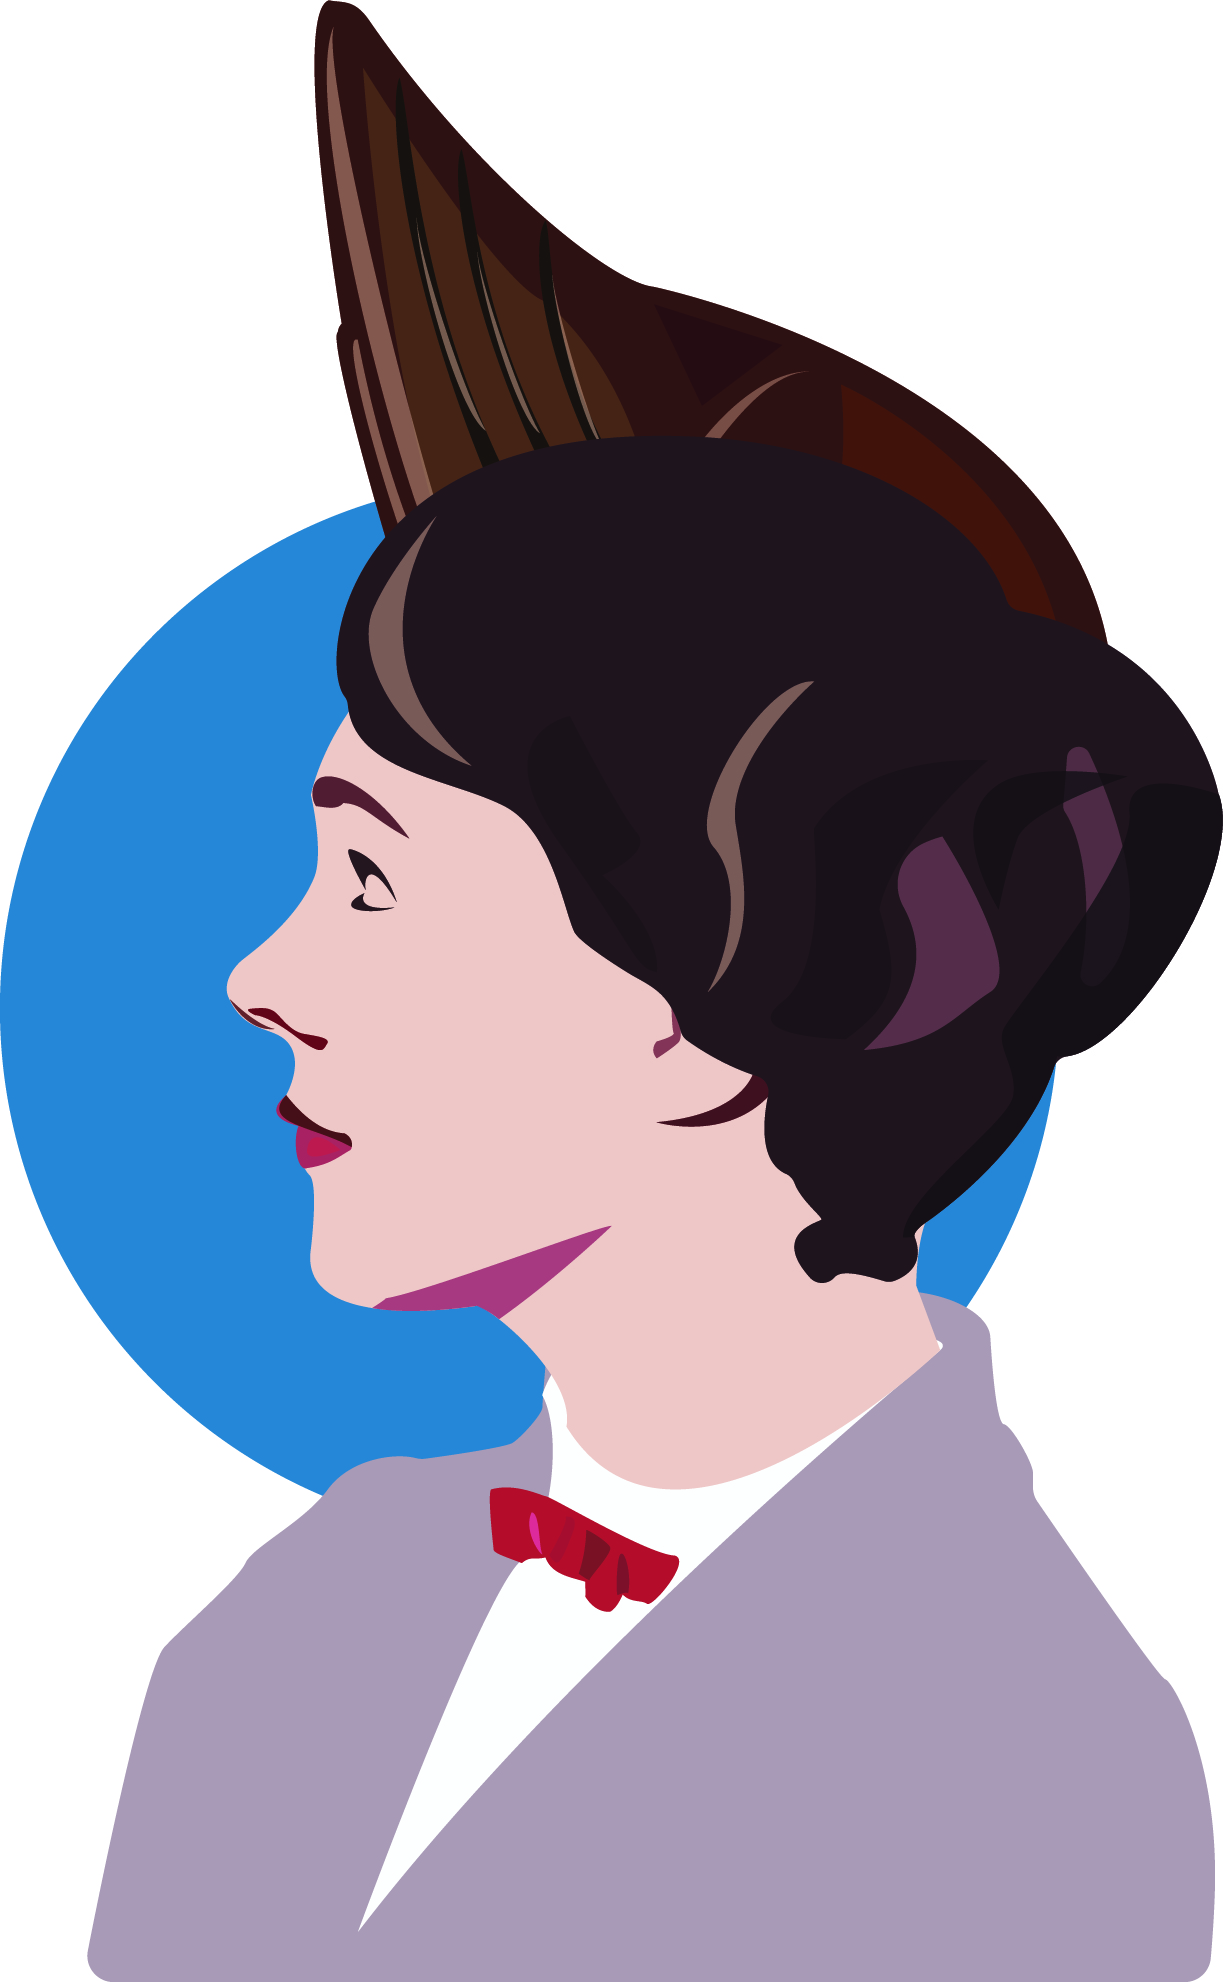 1223x1982 I Made A Mash Up Of Mary Poppins And Yondu, Check It Out!